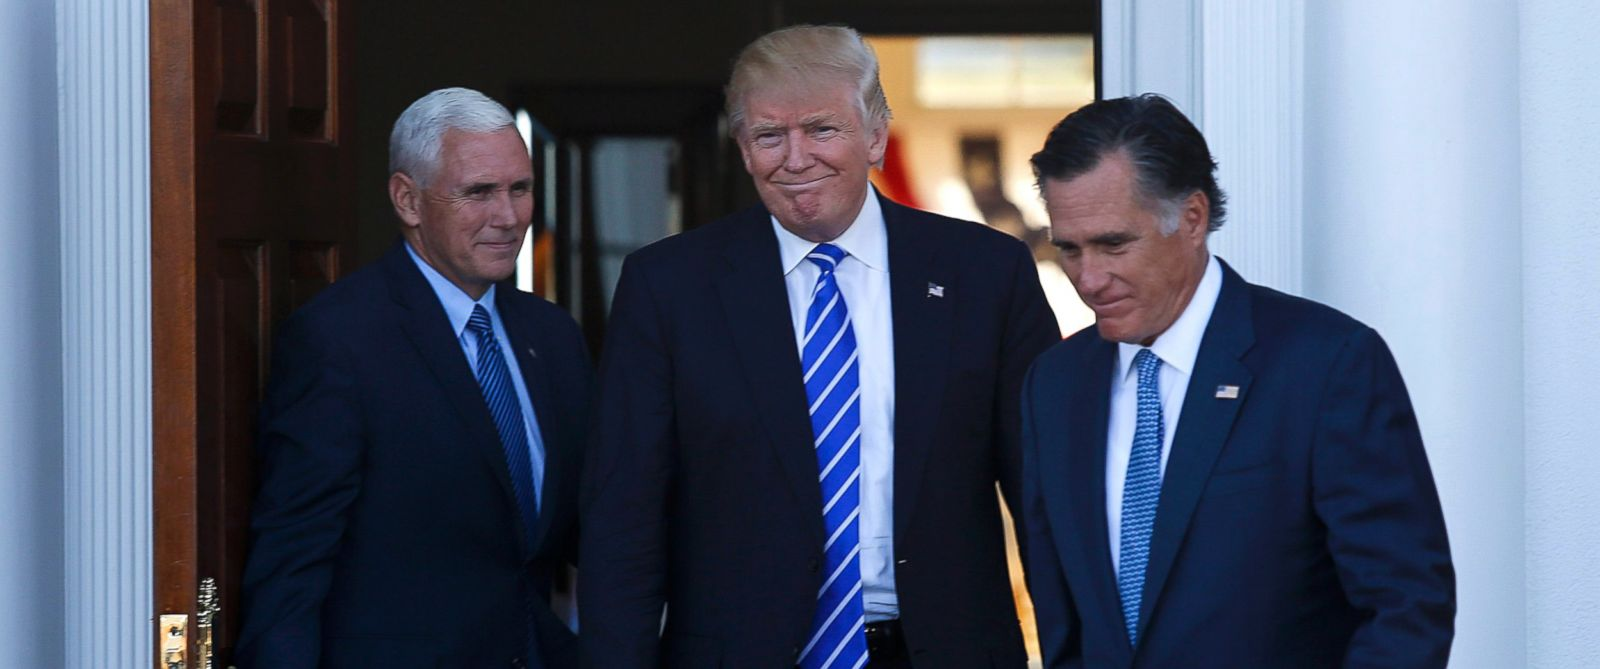 PHOTO: Former Massachusetts Governor Mitt Romney (R) leaves after meeting with President-elect Donald Trump (C) and Vice President-elect Mike Pence (L) at the clubhouse at Trump International Golf Club, in Bedminster Township, New Jersey, Nov. 19, 2016.